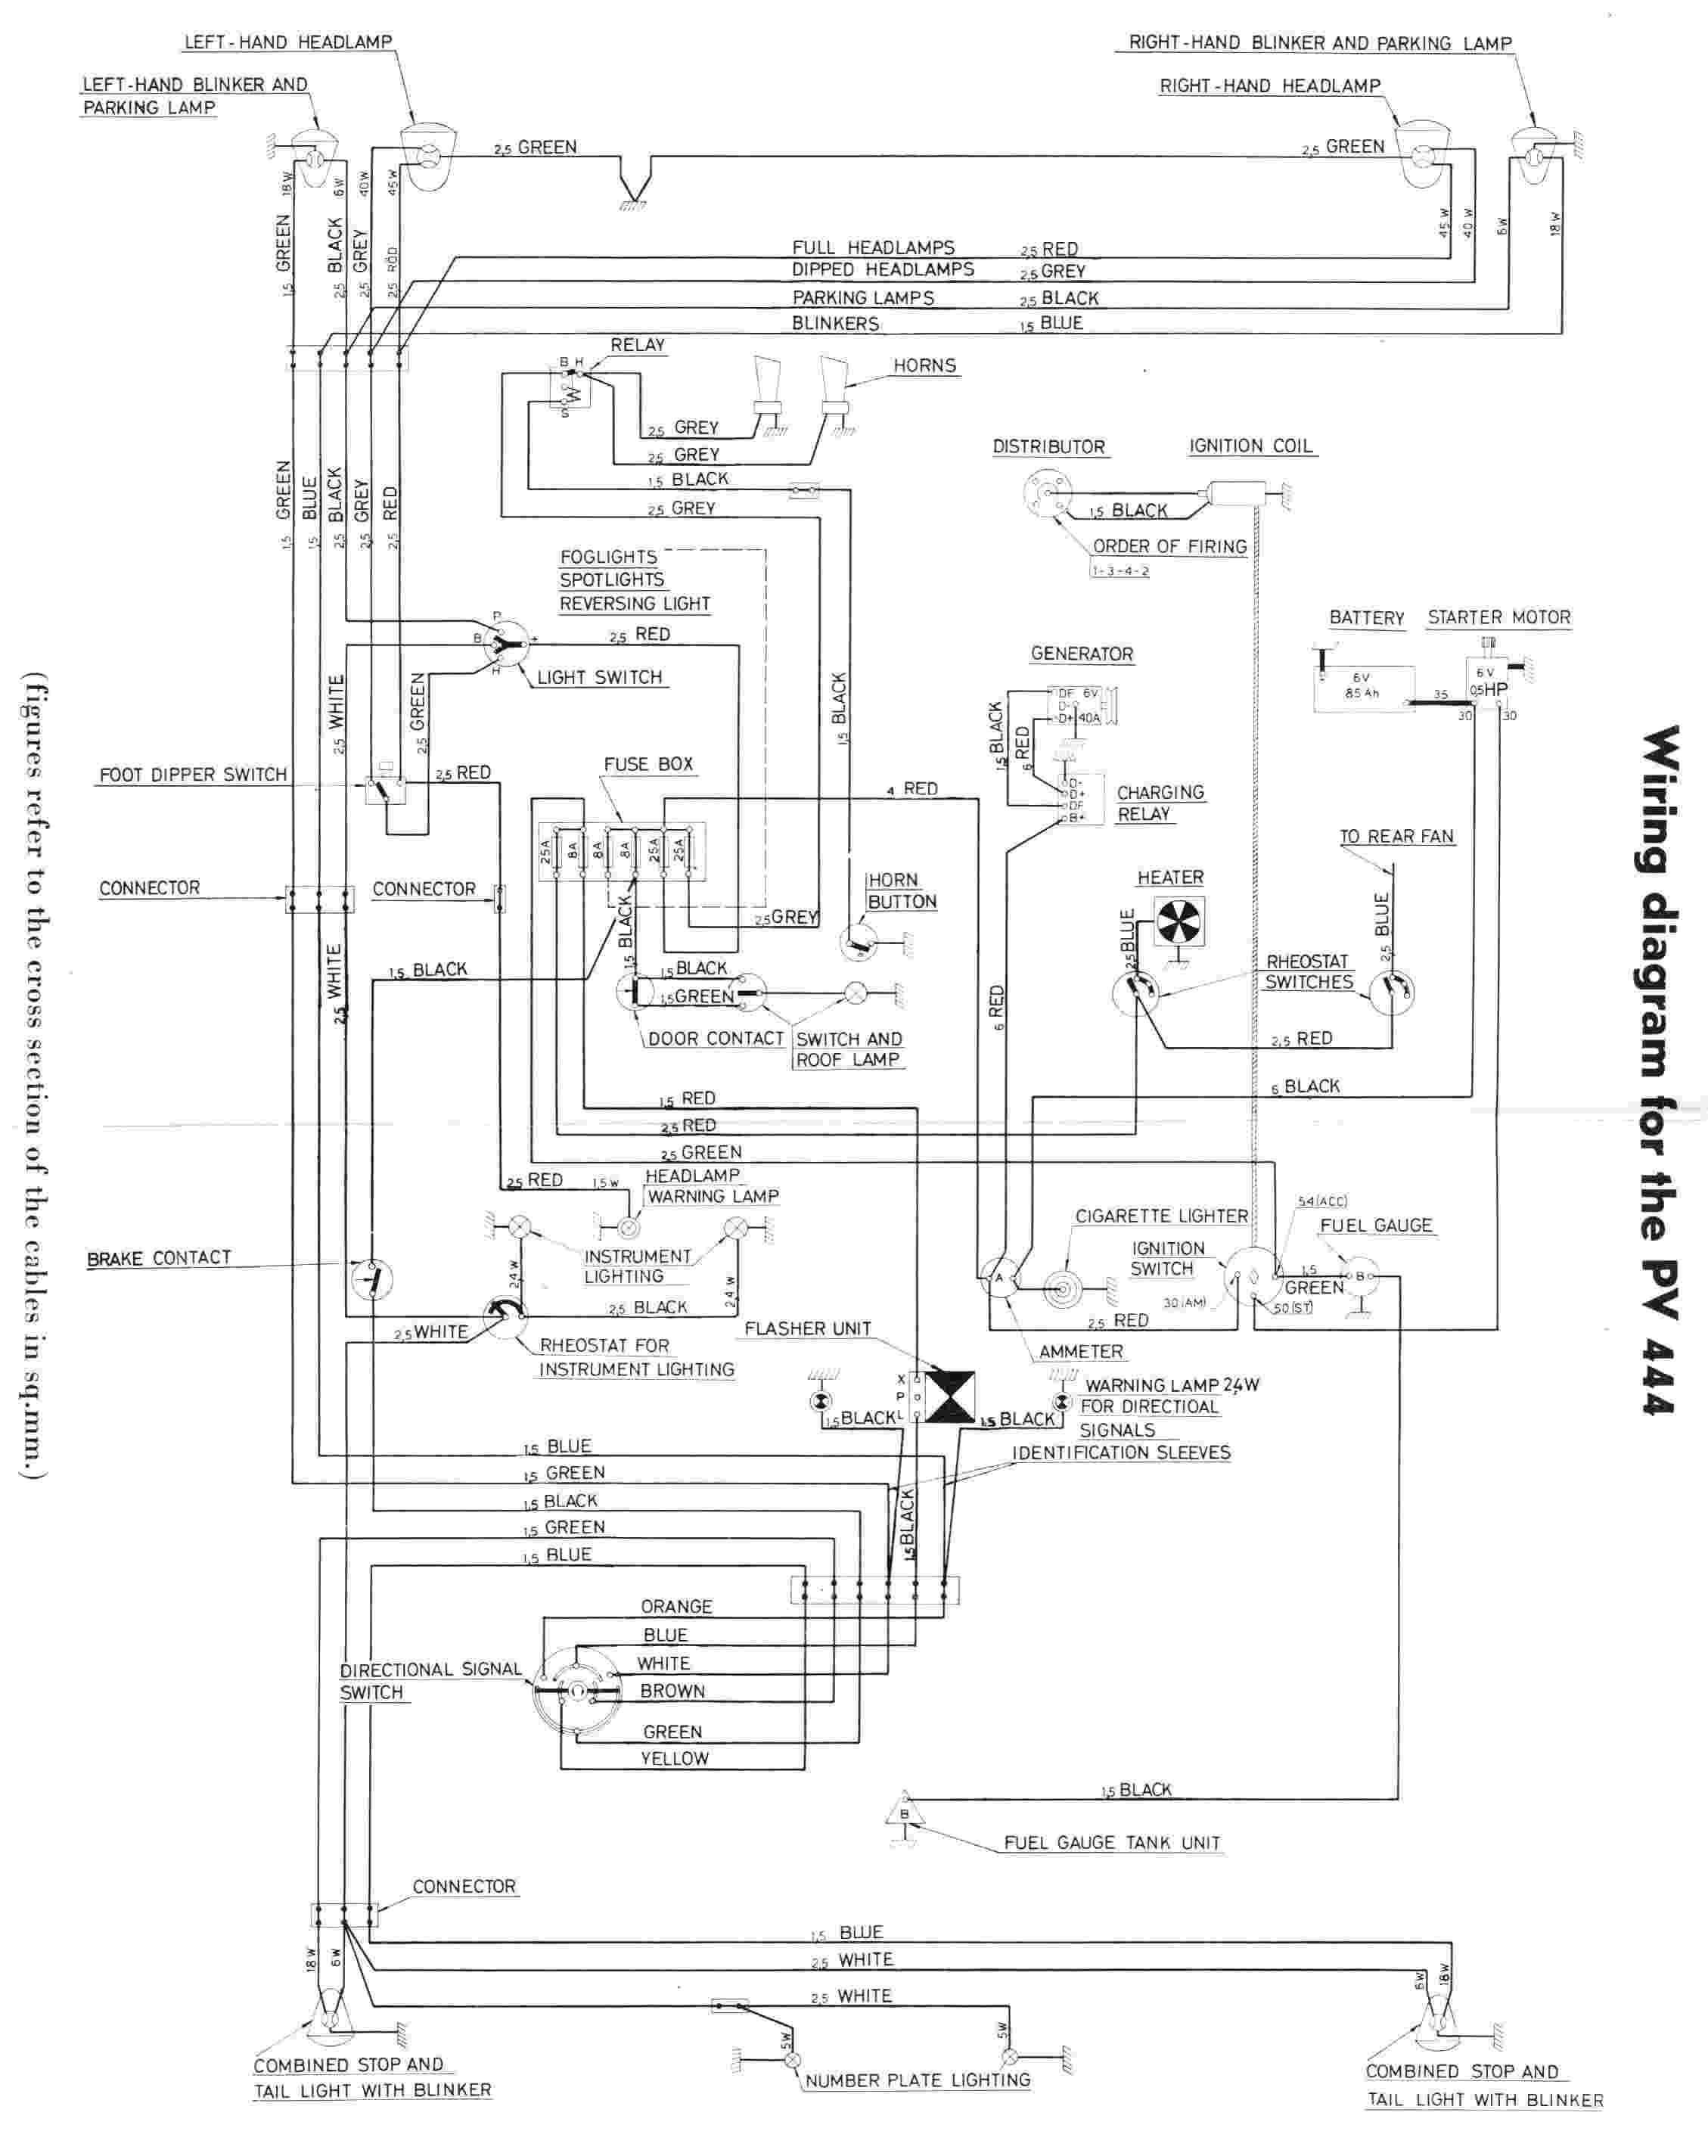 hight resolution of wg volvo truck wiring schematic